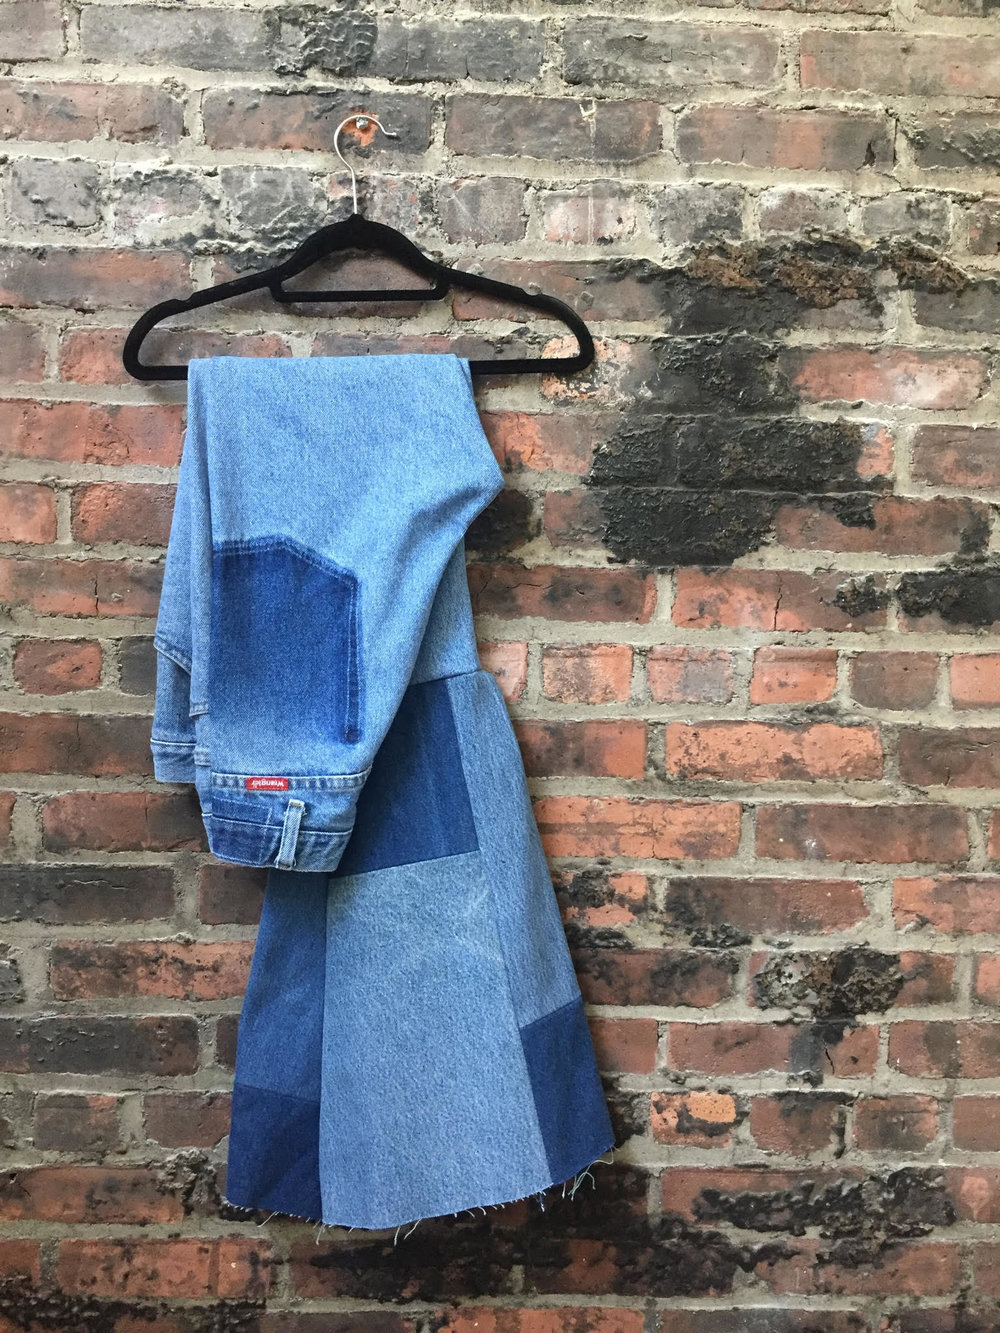 A Pair of Demin Jeans - by Aly Reinert